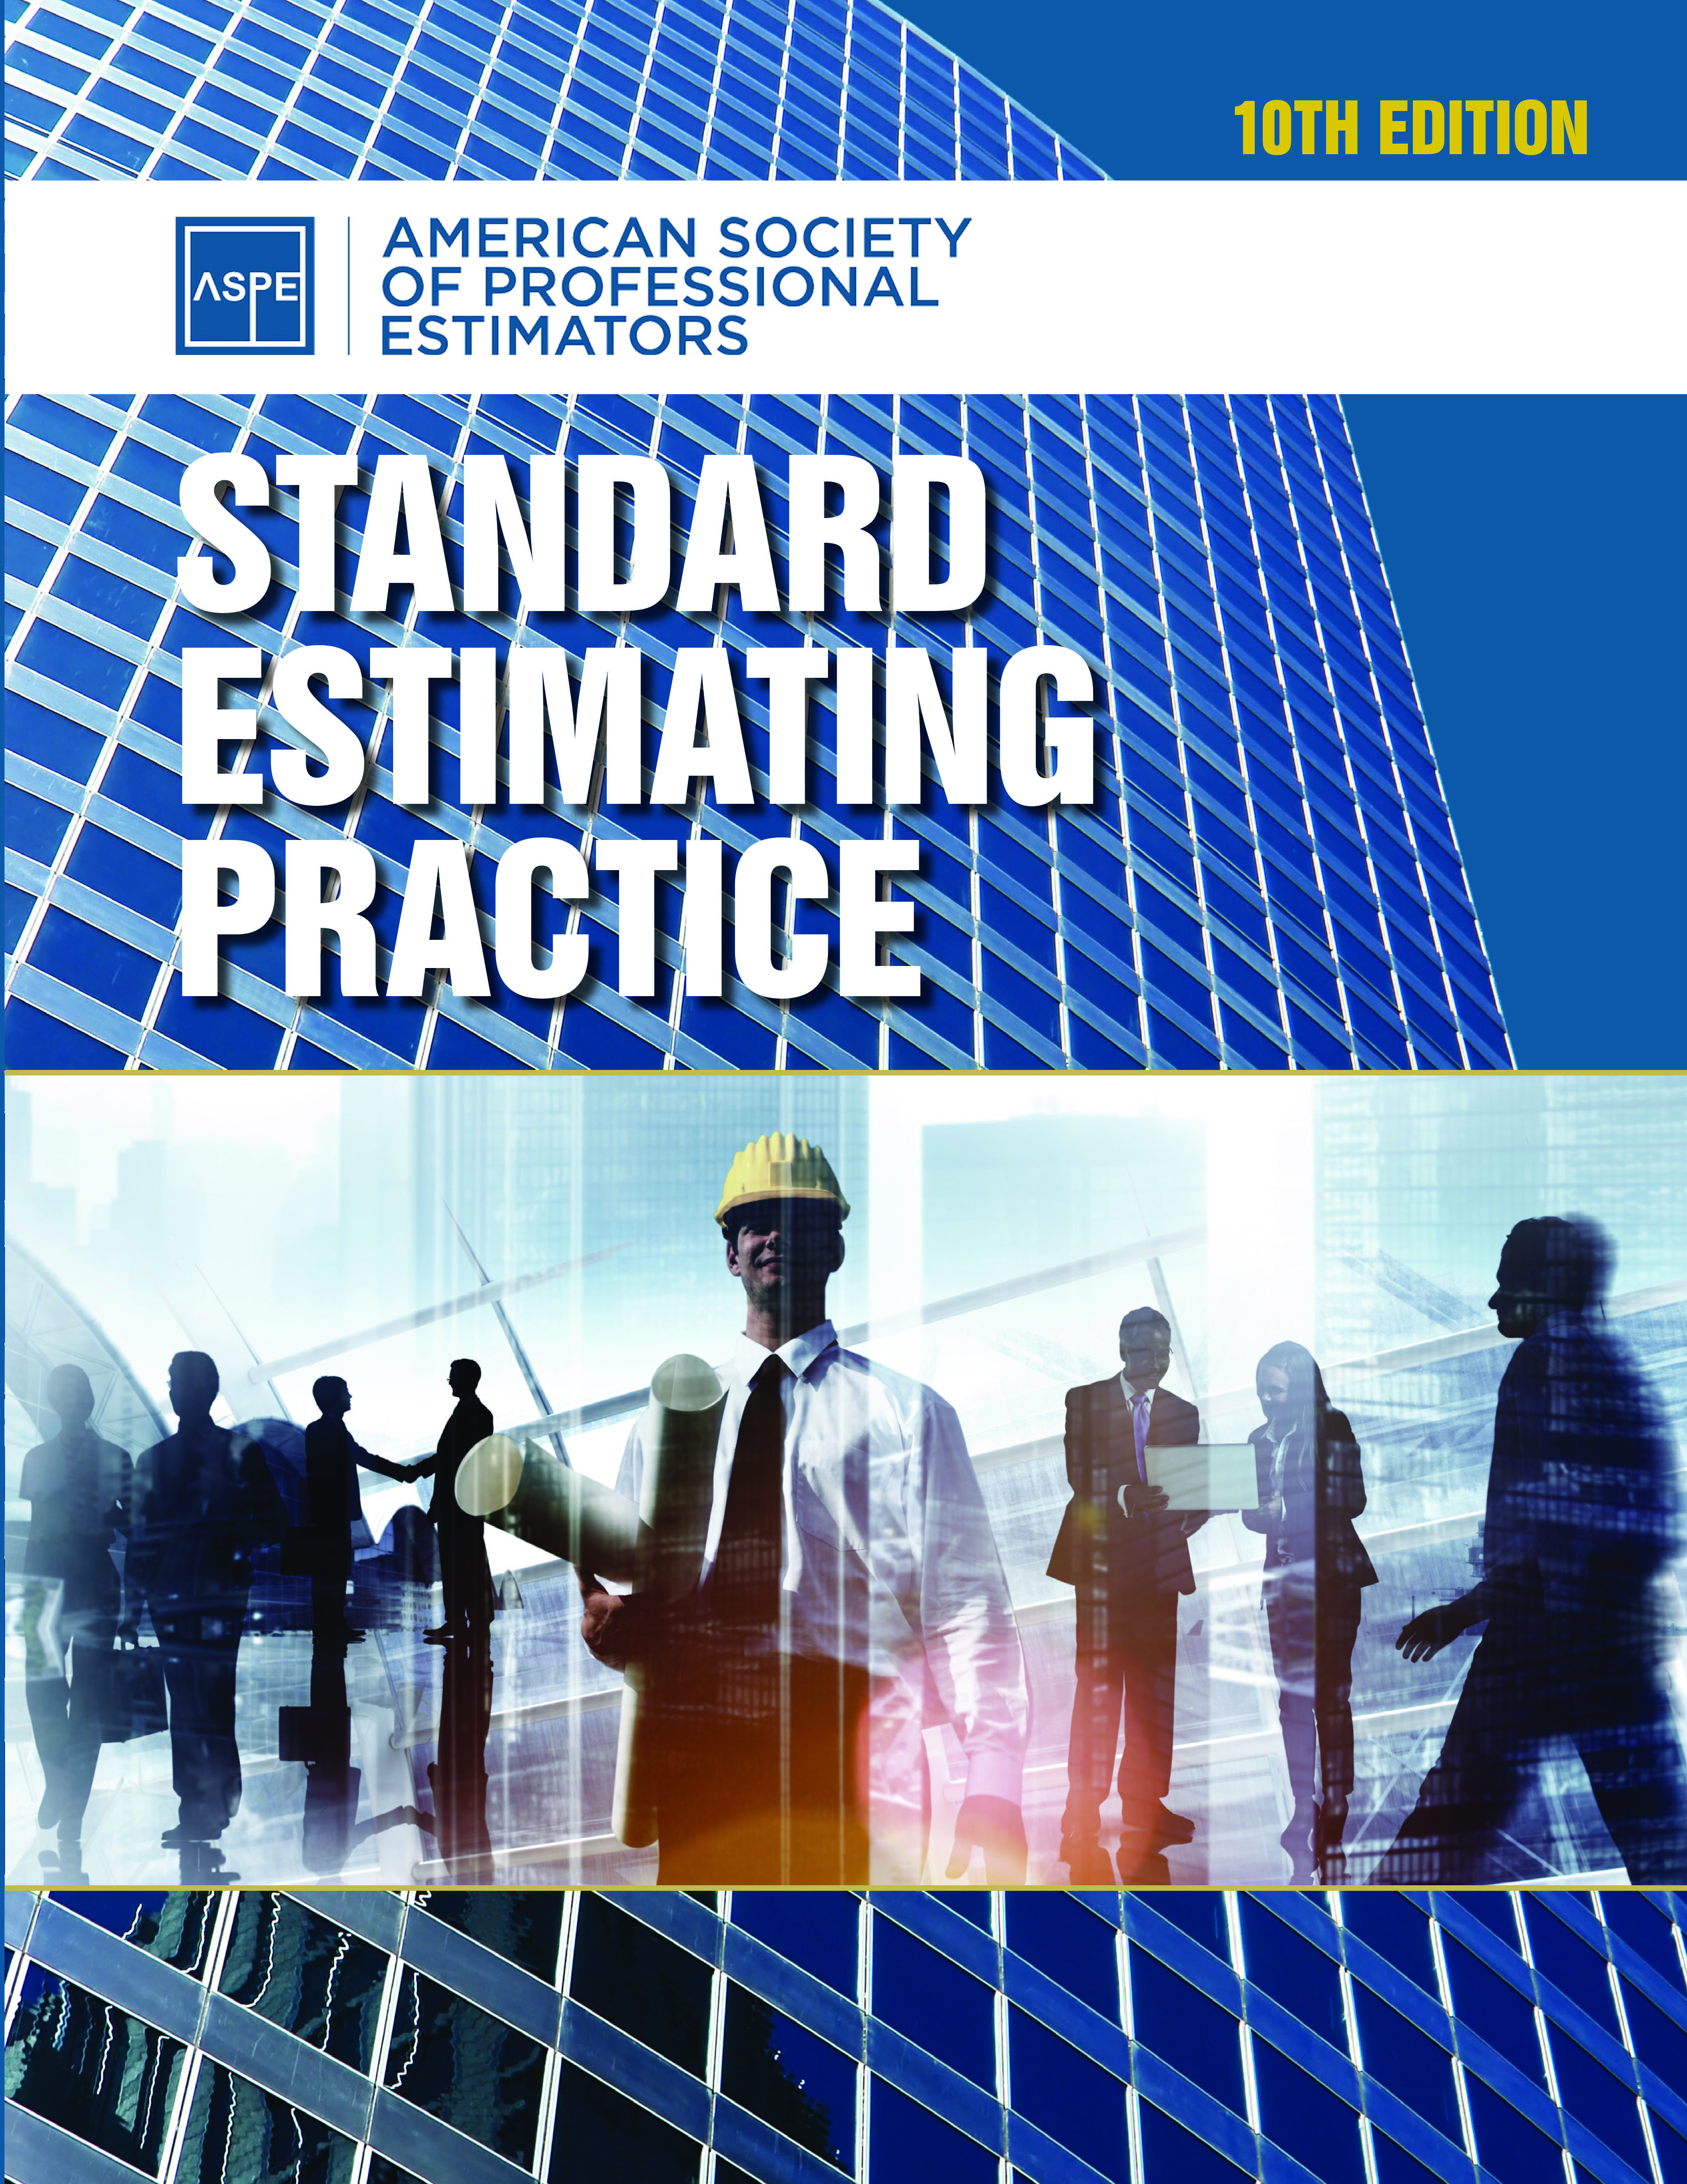 Standard Estimating Practice - American Society of